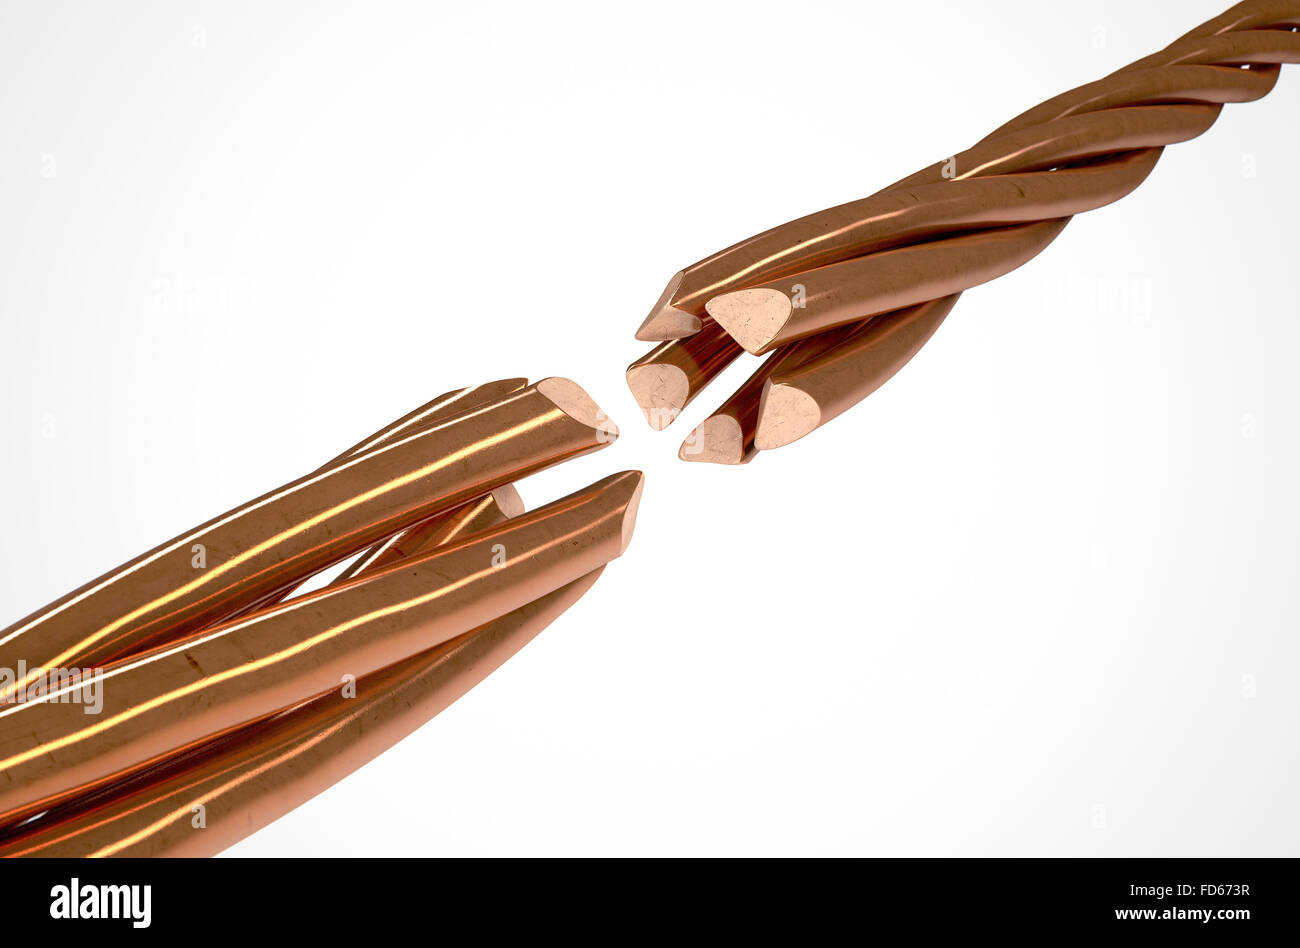 Disconnected Wire Stock Photos & Disconnected Wire Stock Images - Alamy